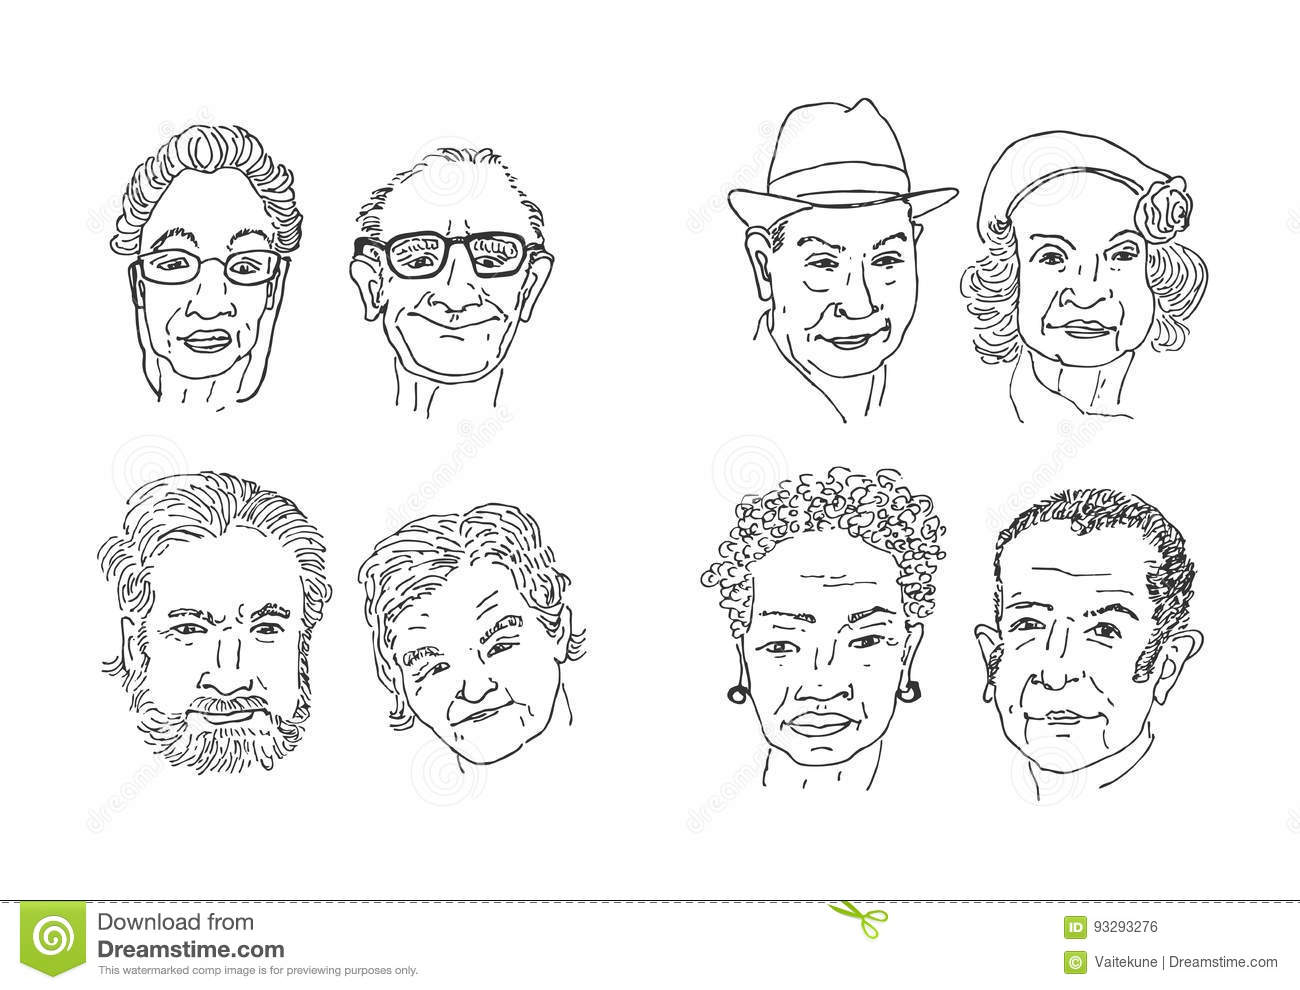 Old people faces drawing. stock illustration. Illustration